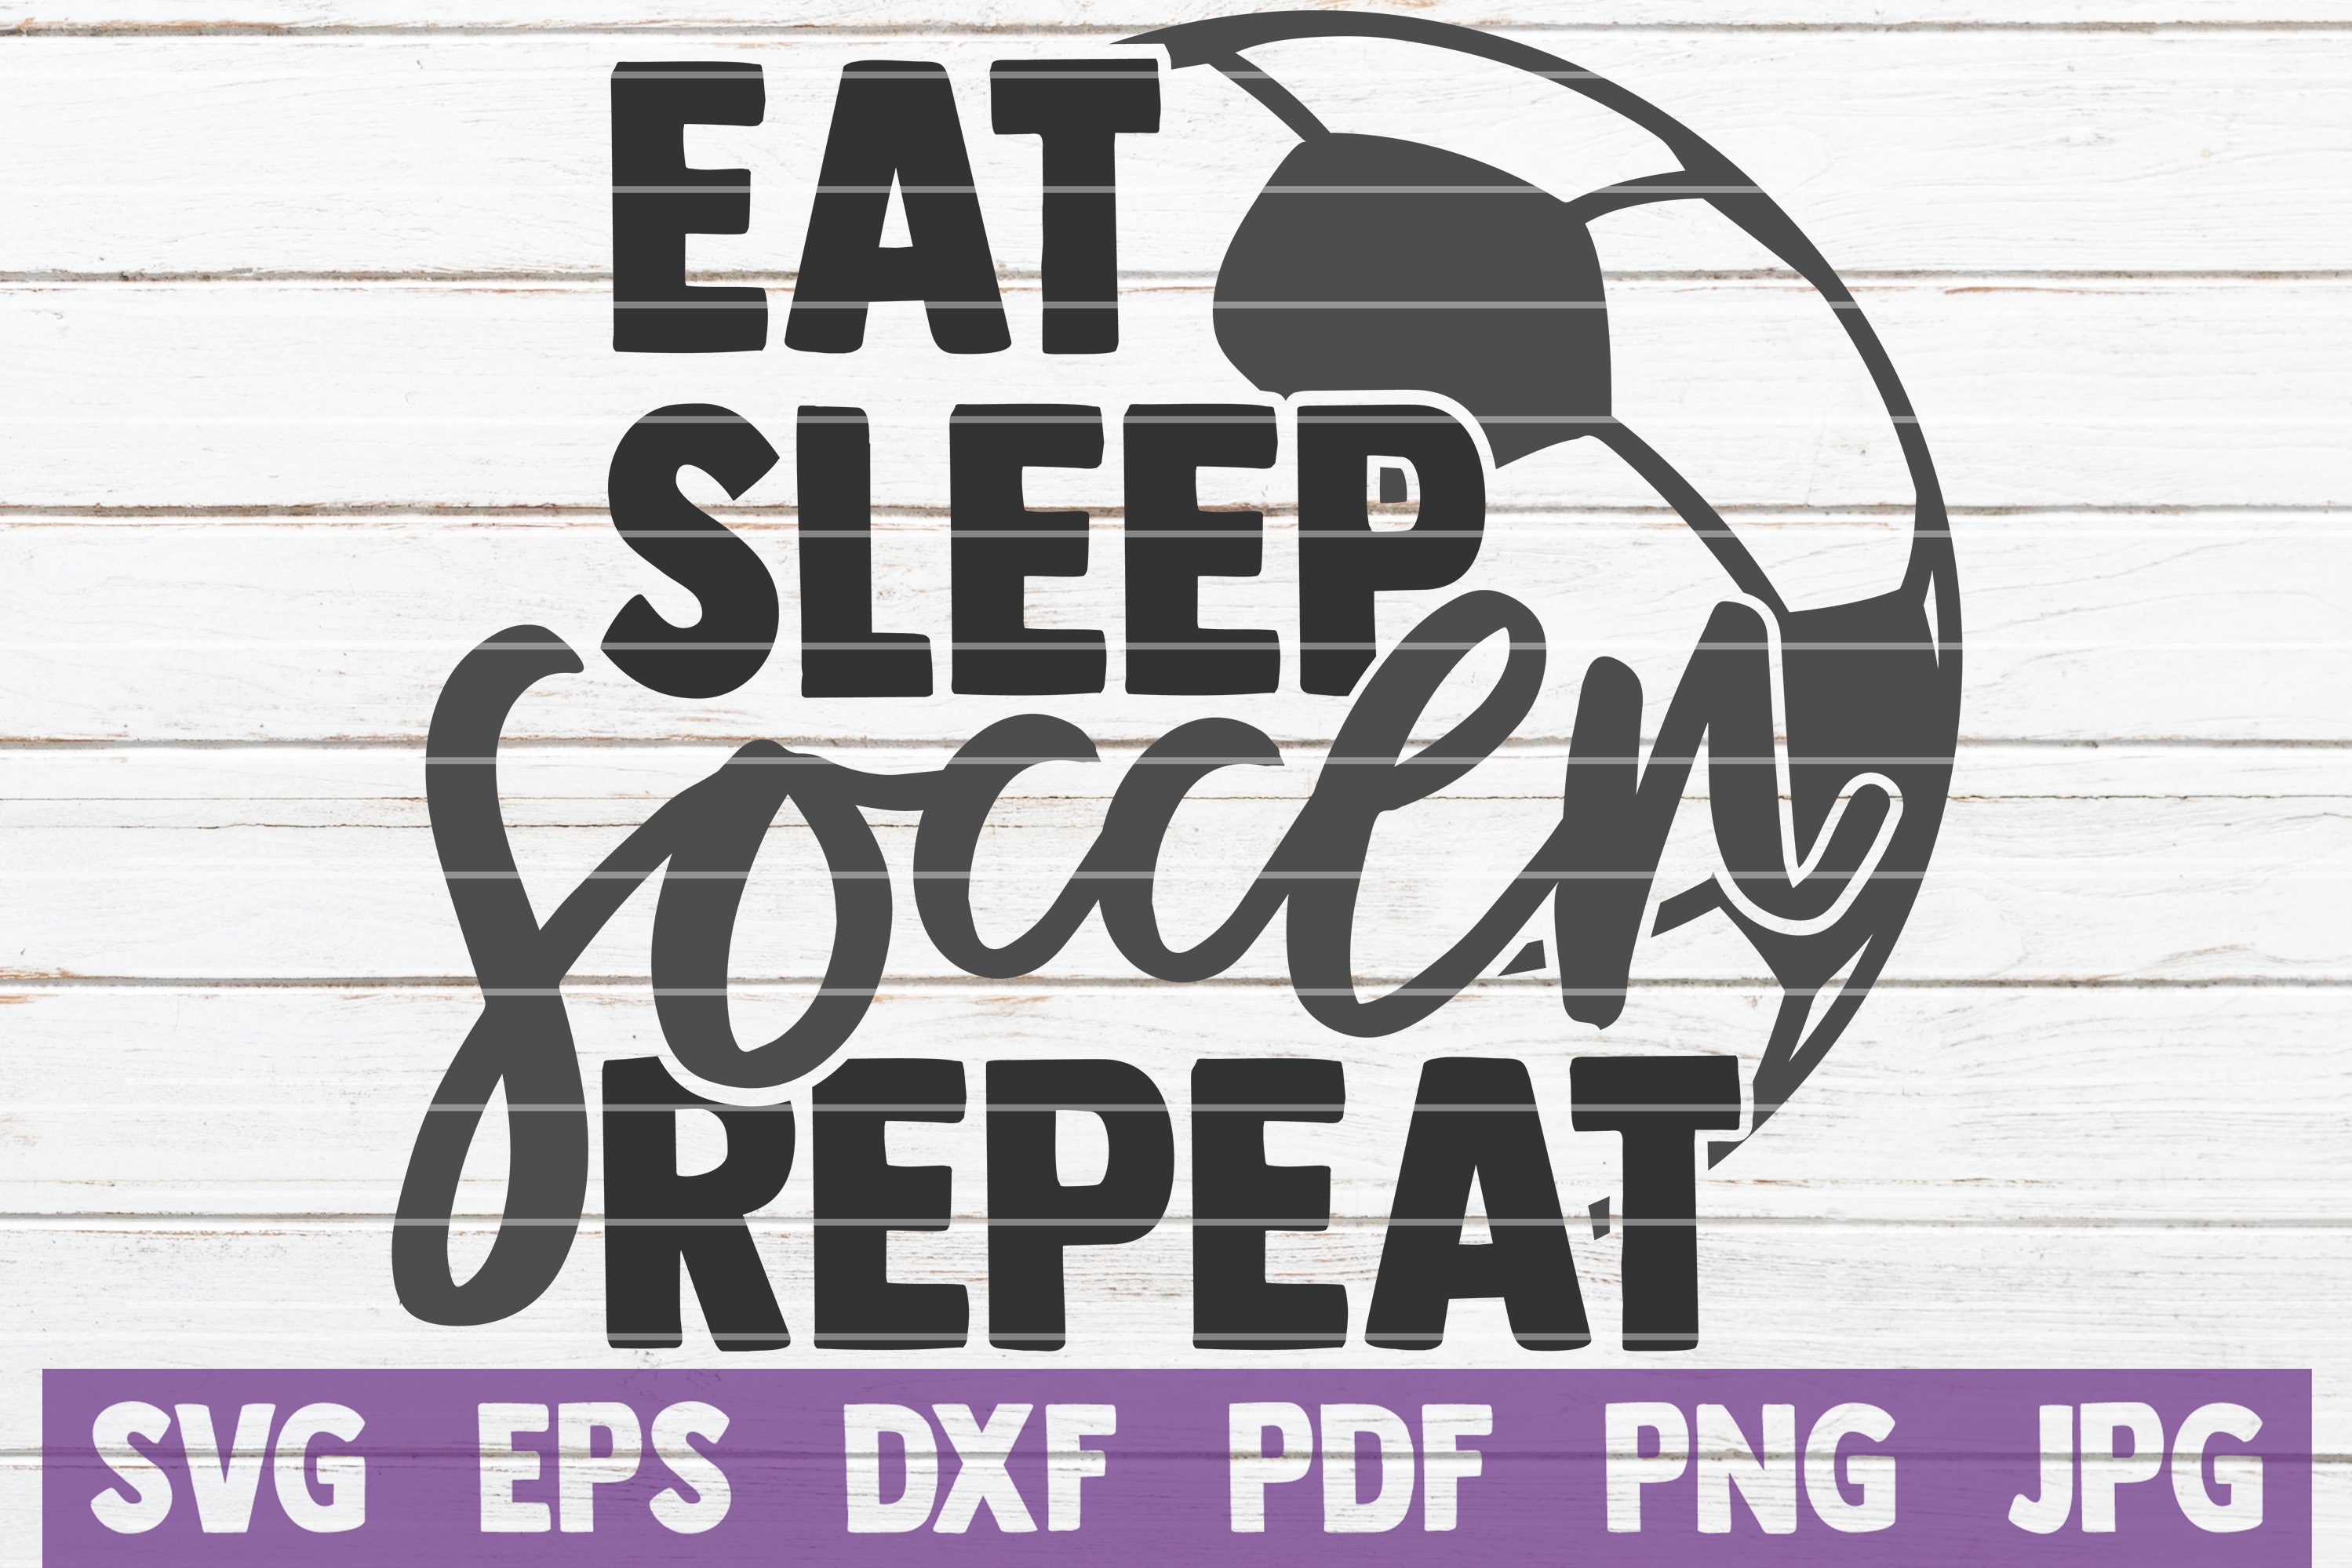 Download Free Eat Sleep Soccer Repeat Svg Cut File Grafik Von for Cricut Explore, Silhouette and other cutting machines.